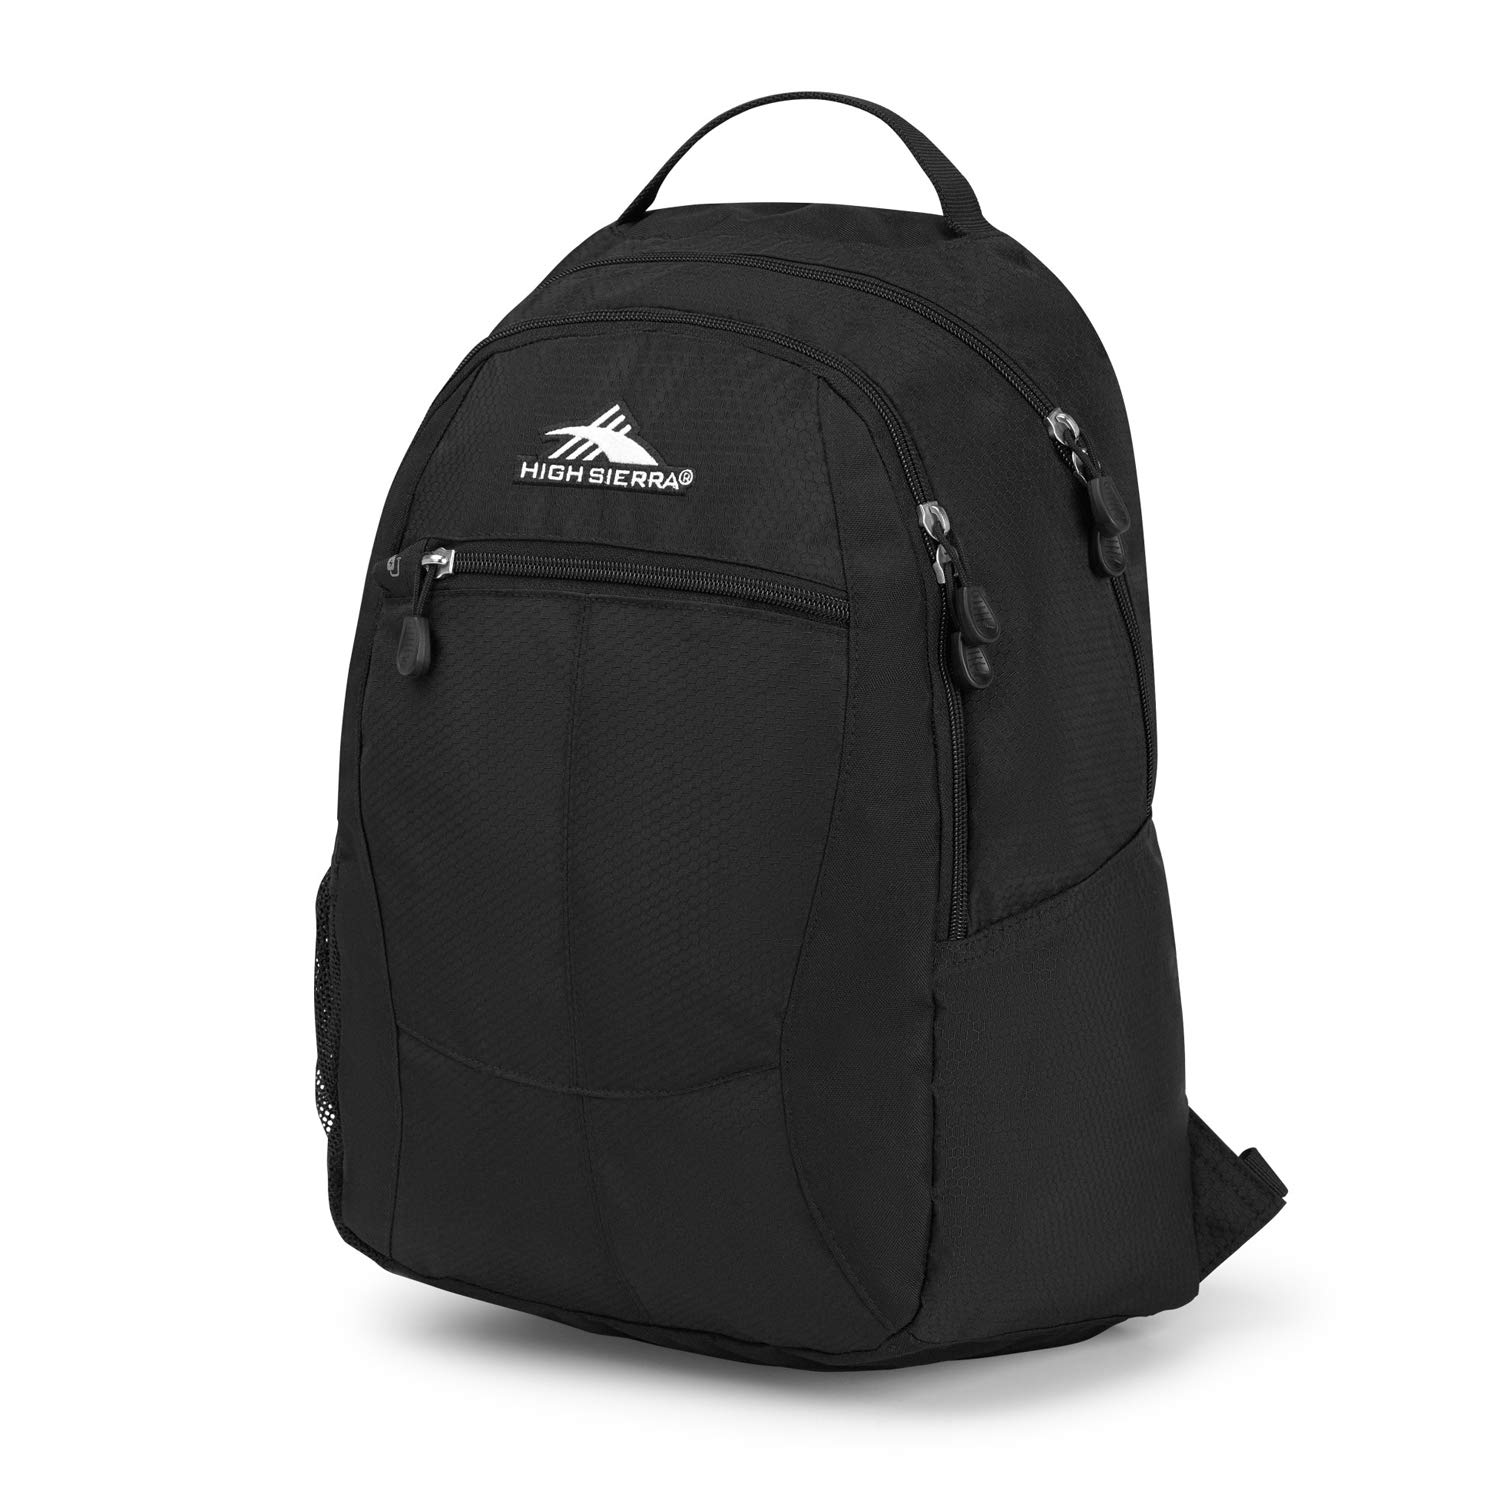 9e95b3f741a High Sierra Unisex Curve Backpack, Lightweight and Stylish Bookbag Backpack  for College Students with Padded Shoulder Straps